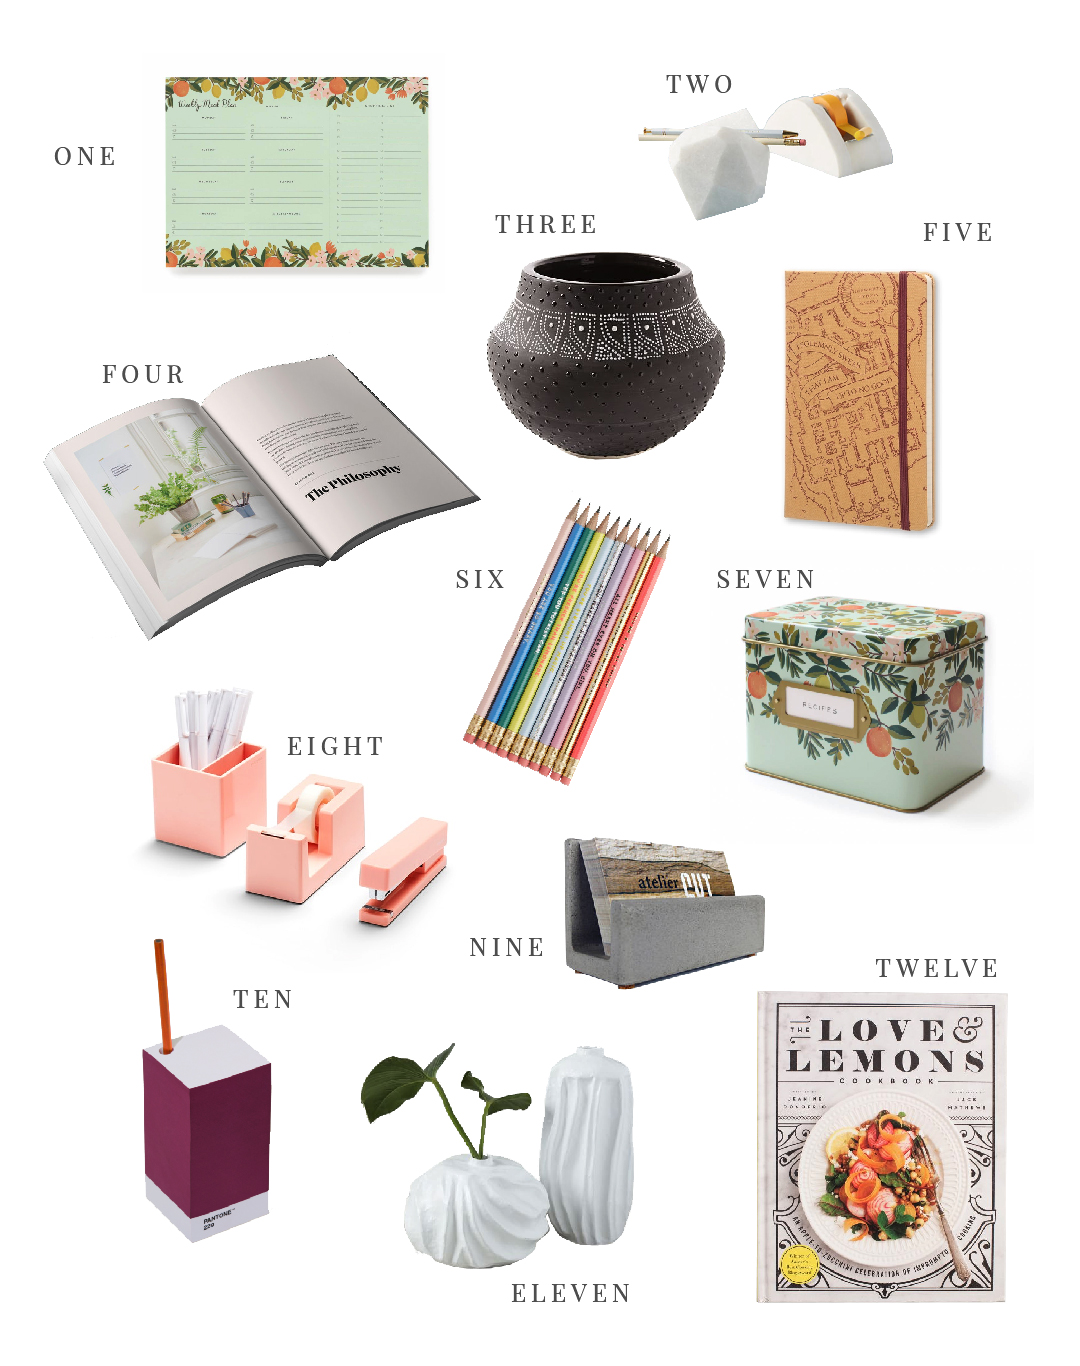 BLOG-GIFTGUIDE-SMALL-01.jpg